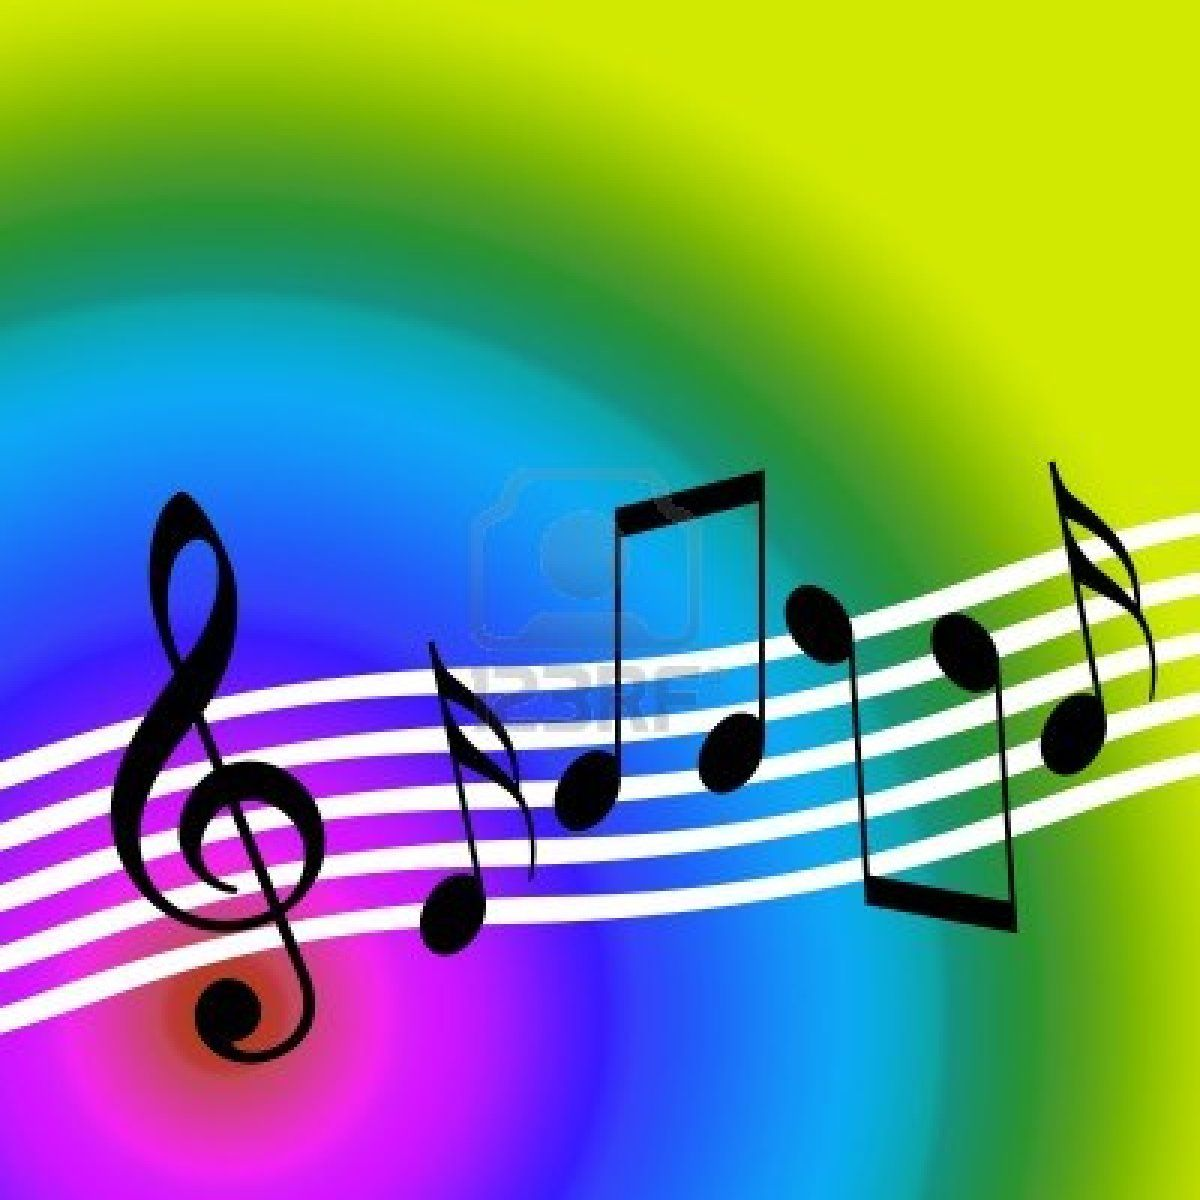 Images of music symbols google search music pinterest images of music symbols google search buycottarizona